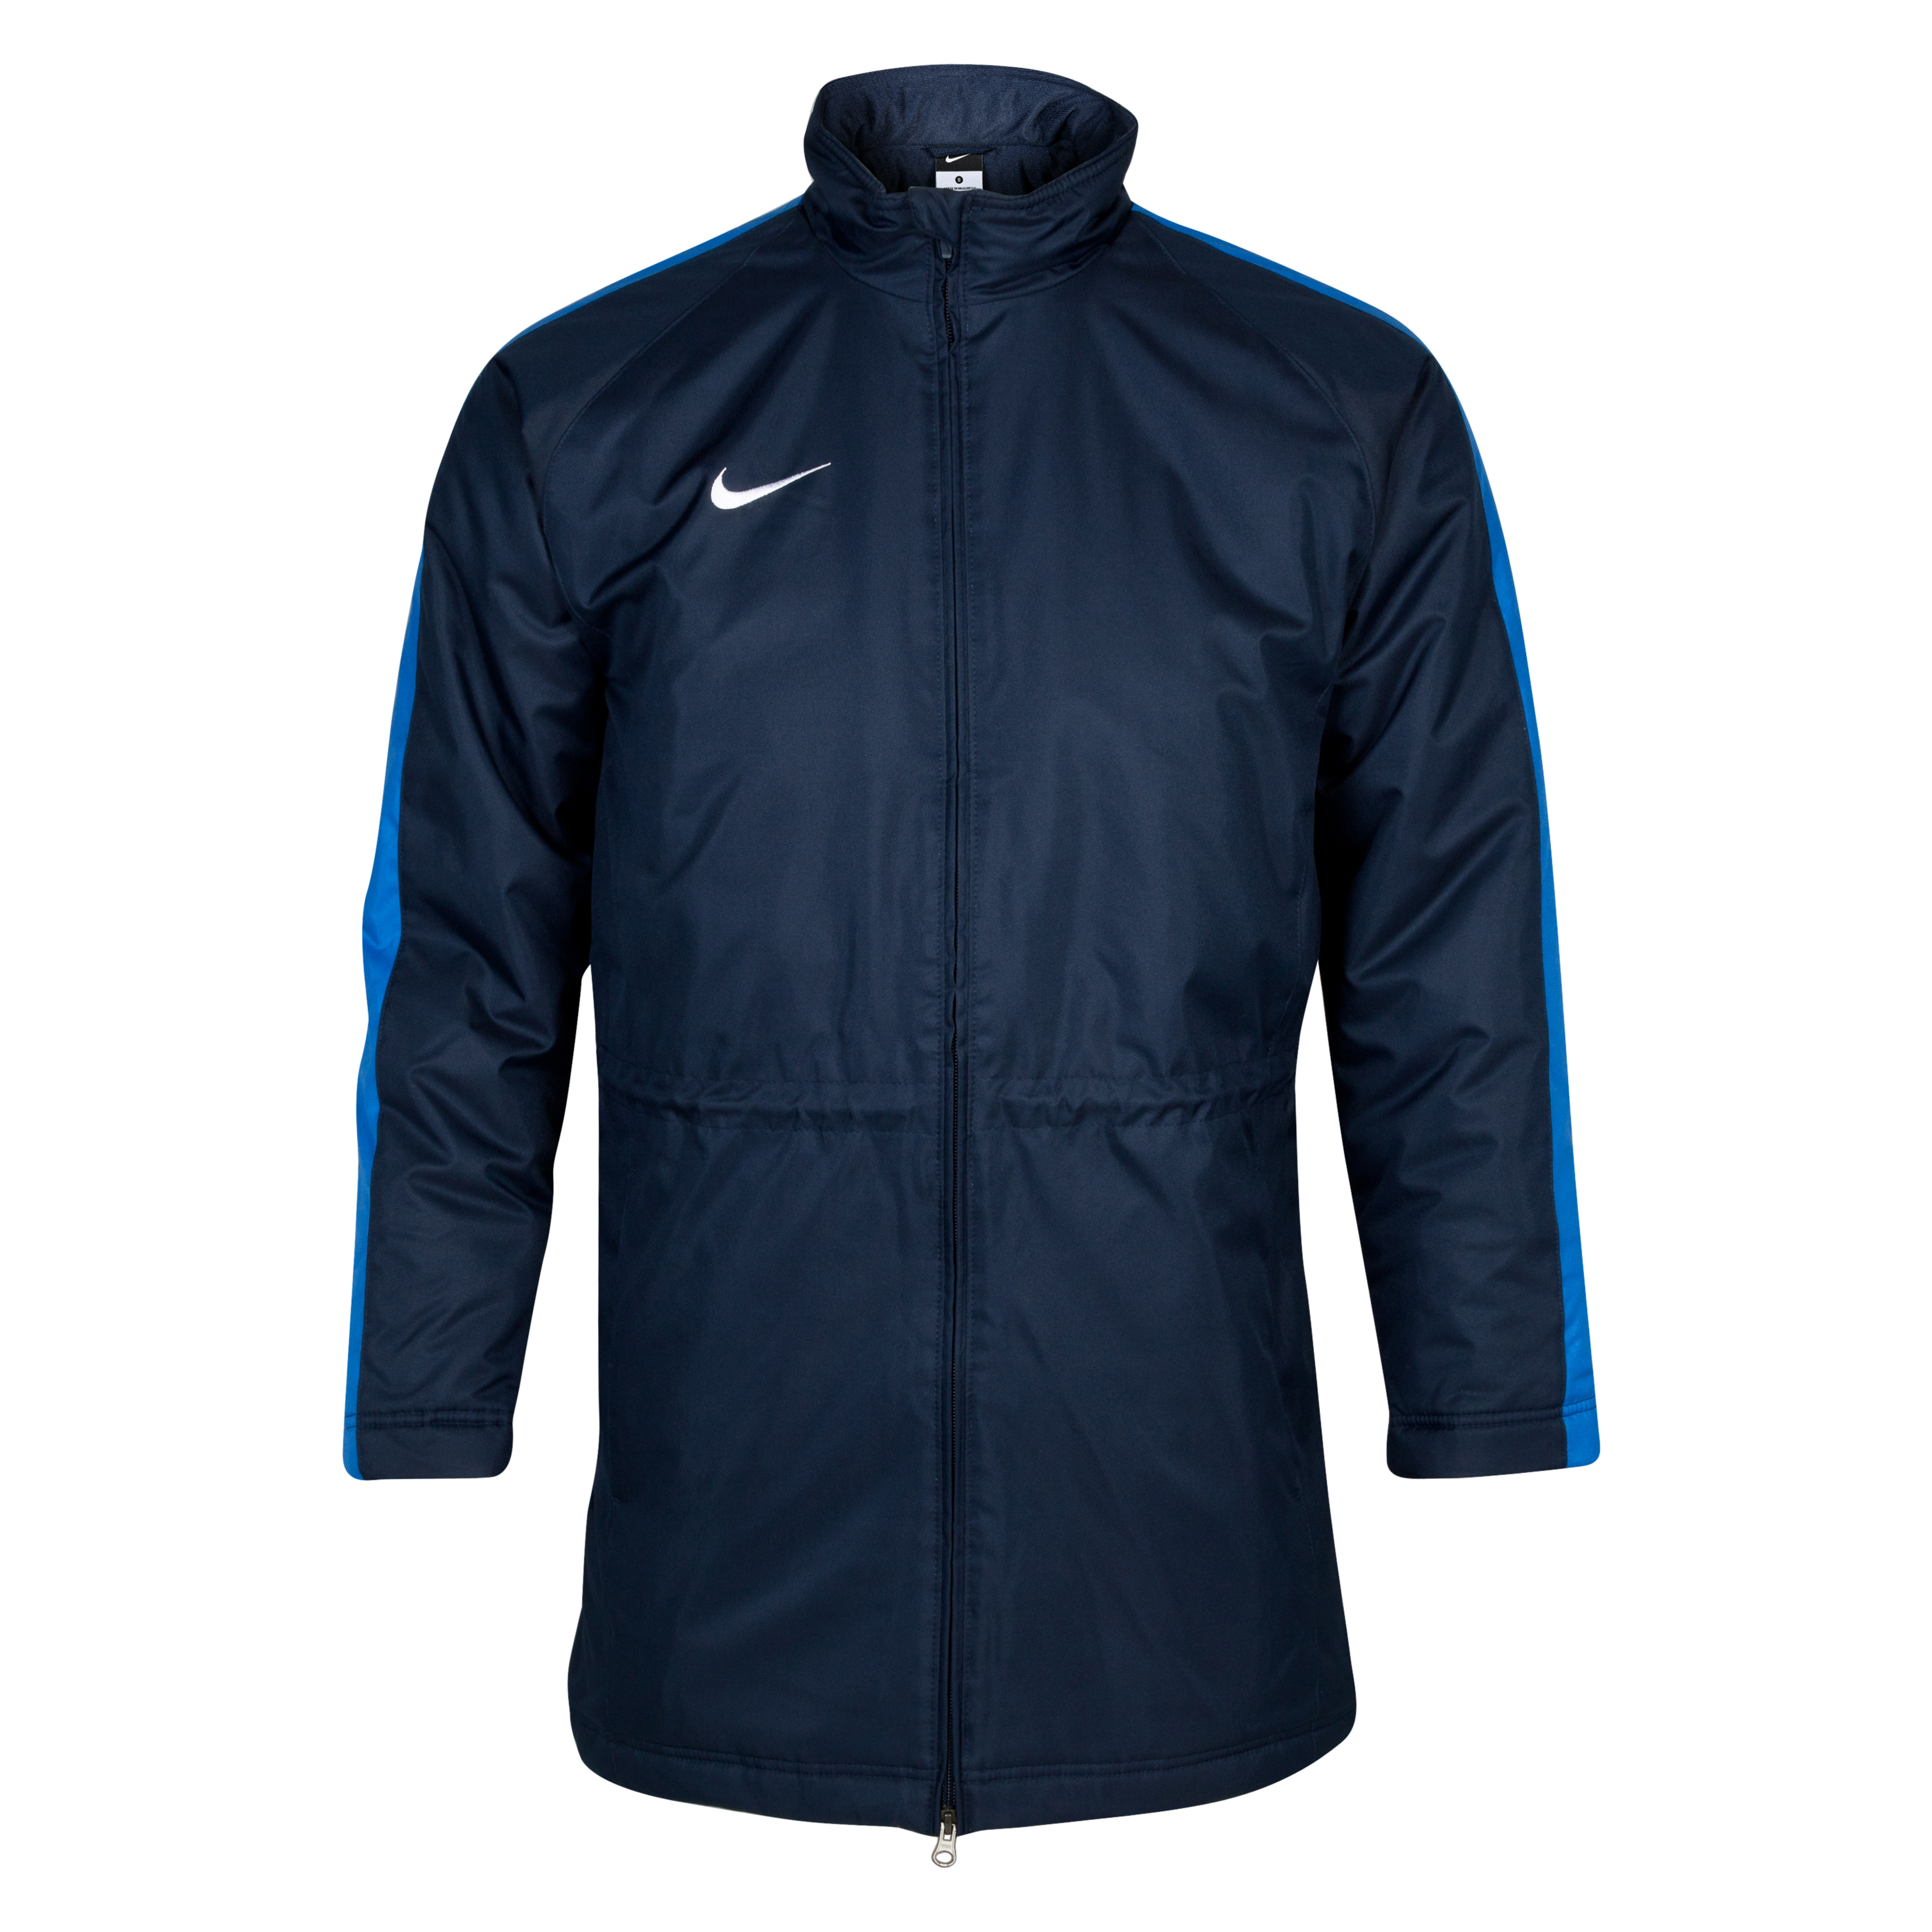 Nike Team Longer Winter Jacket - Obsidian/Royal Blue/White